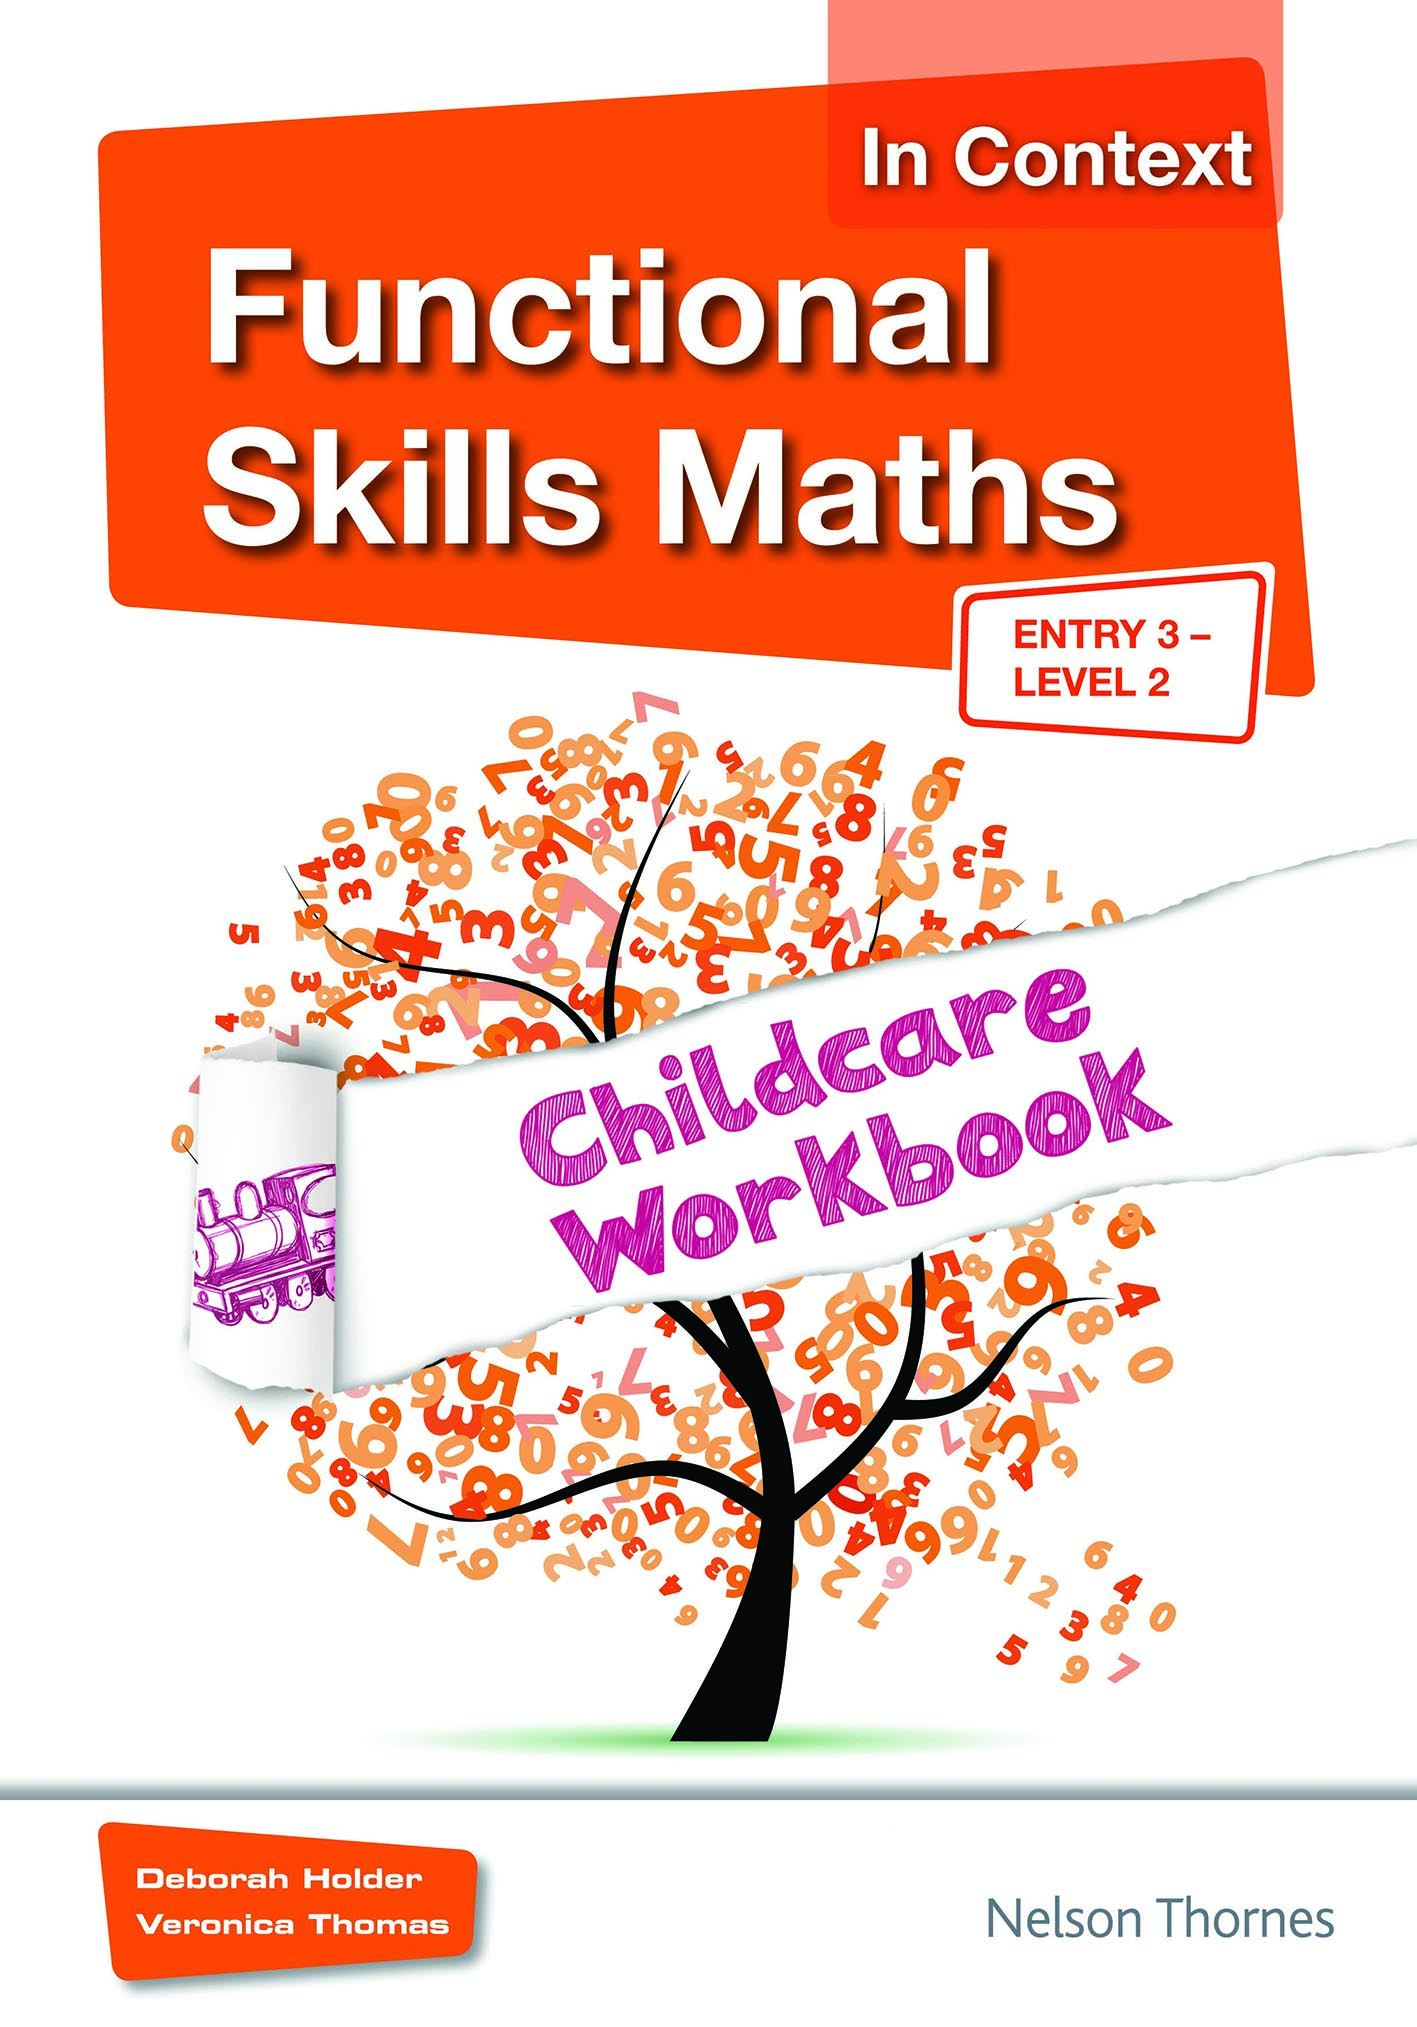 Functional Math Worksheets For Adults